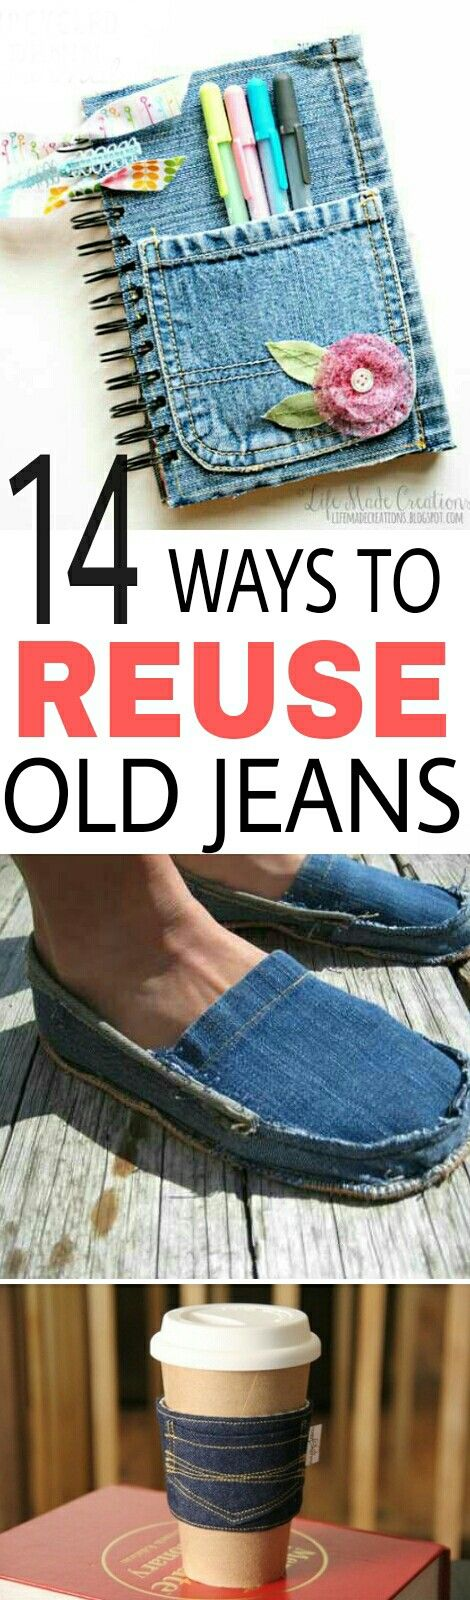 DIY ideas, Recycle Jeans, DIY tips, Reuse Old Denim, Frugal Living Ideas, popular pin, Money saving ideas